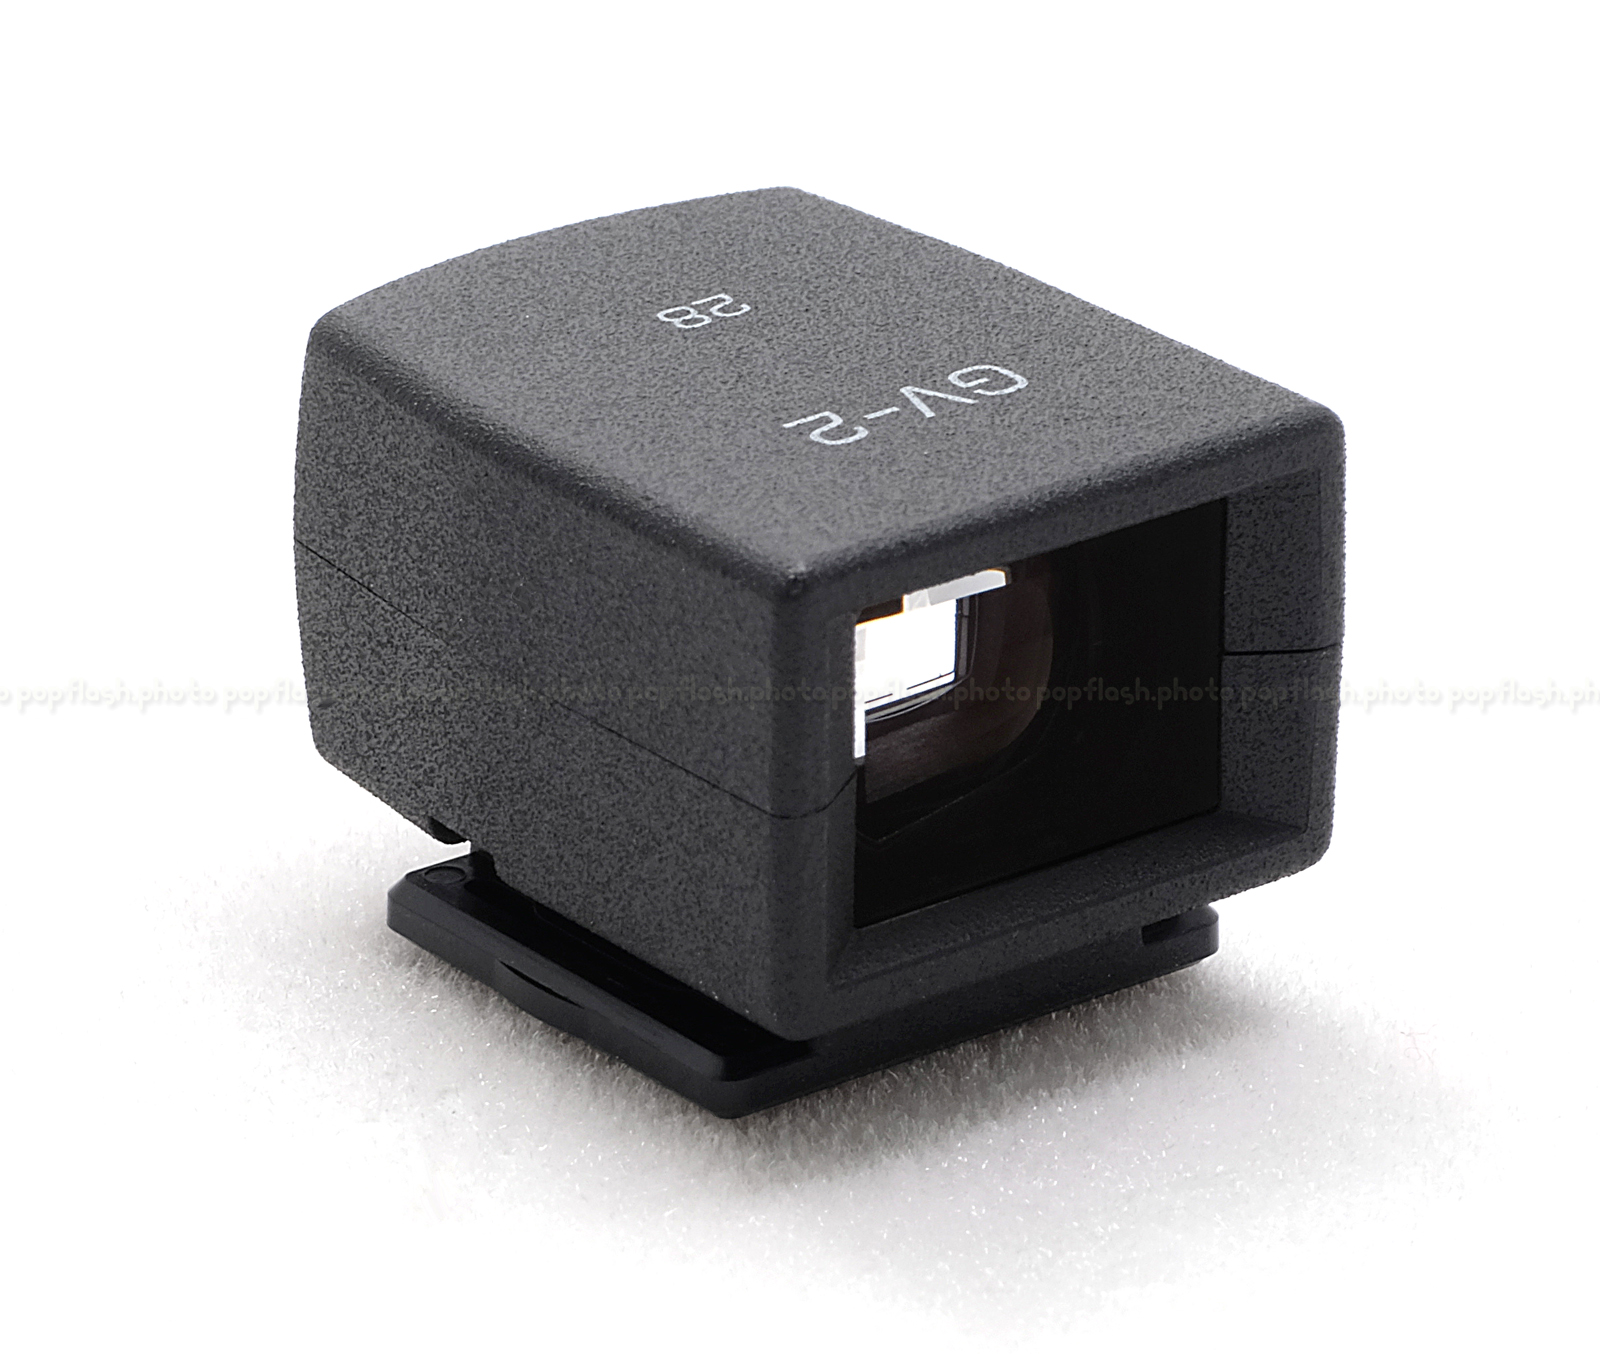 RICOH GV-2 OPTICAL VIEWFINDER (for Ricoh GR III) USA NEW